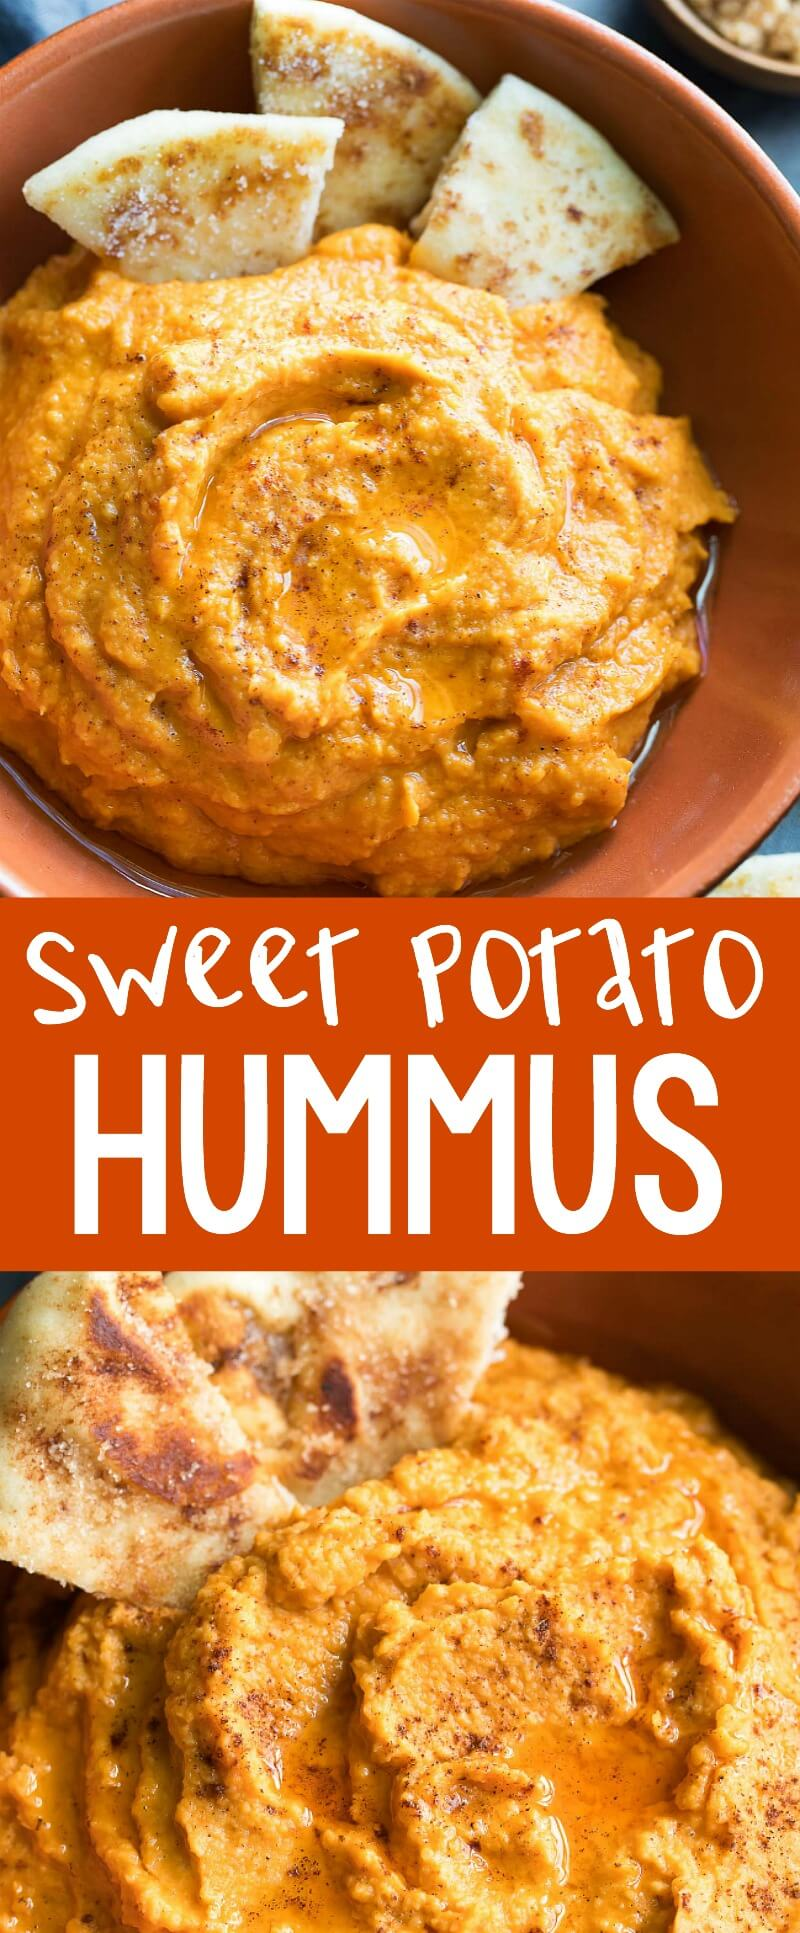 Sweet Potato Hummus kissed with pumpkin spice seasoning and served with the most amazing cinnamon sugar flatbread dippers. We're pretty excited to eat this sweet and savory hummus all Fall long! #sweetpotato #hummus #appetizer #snack